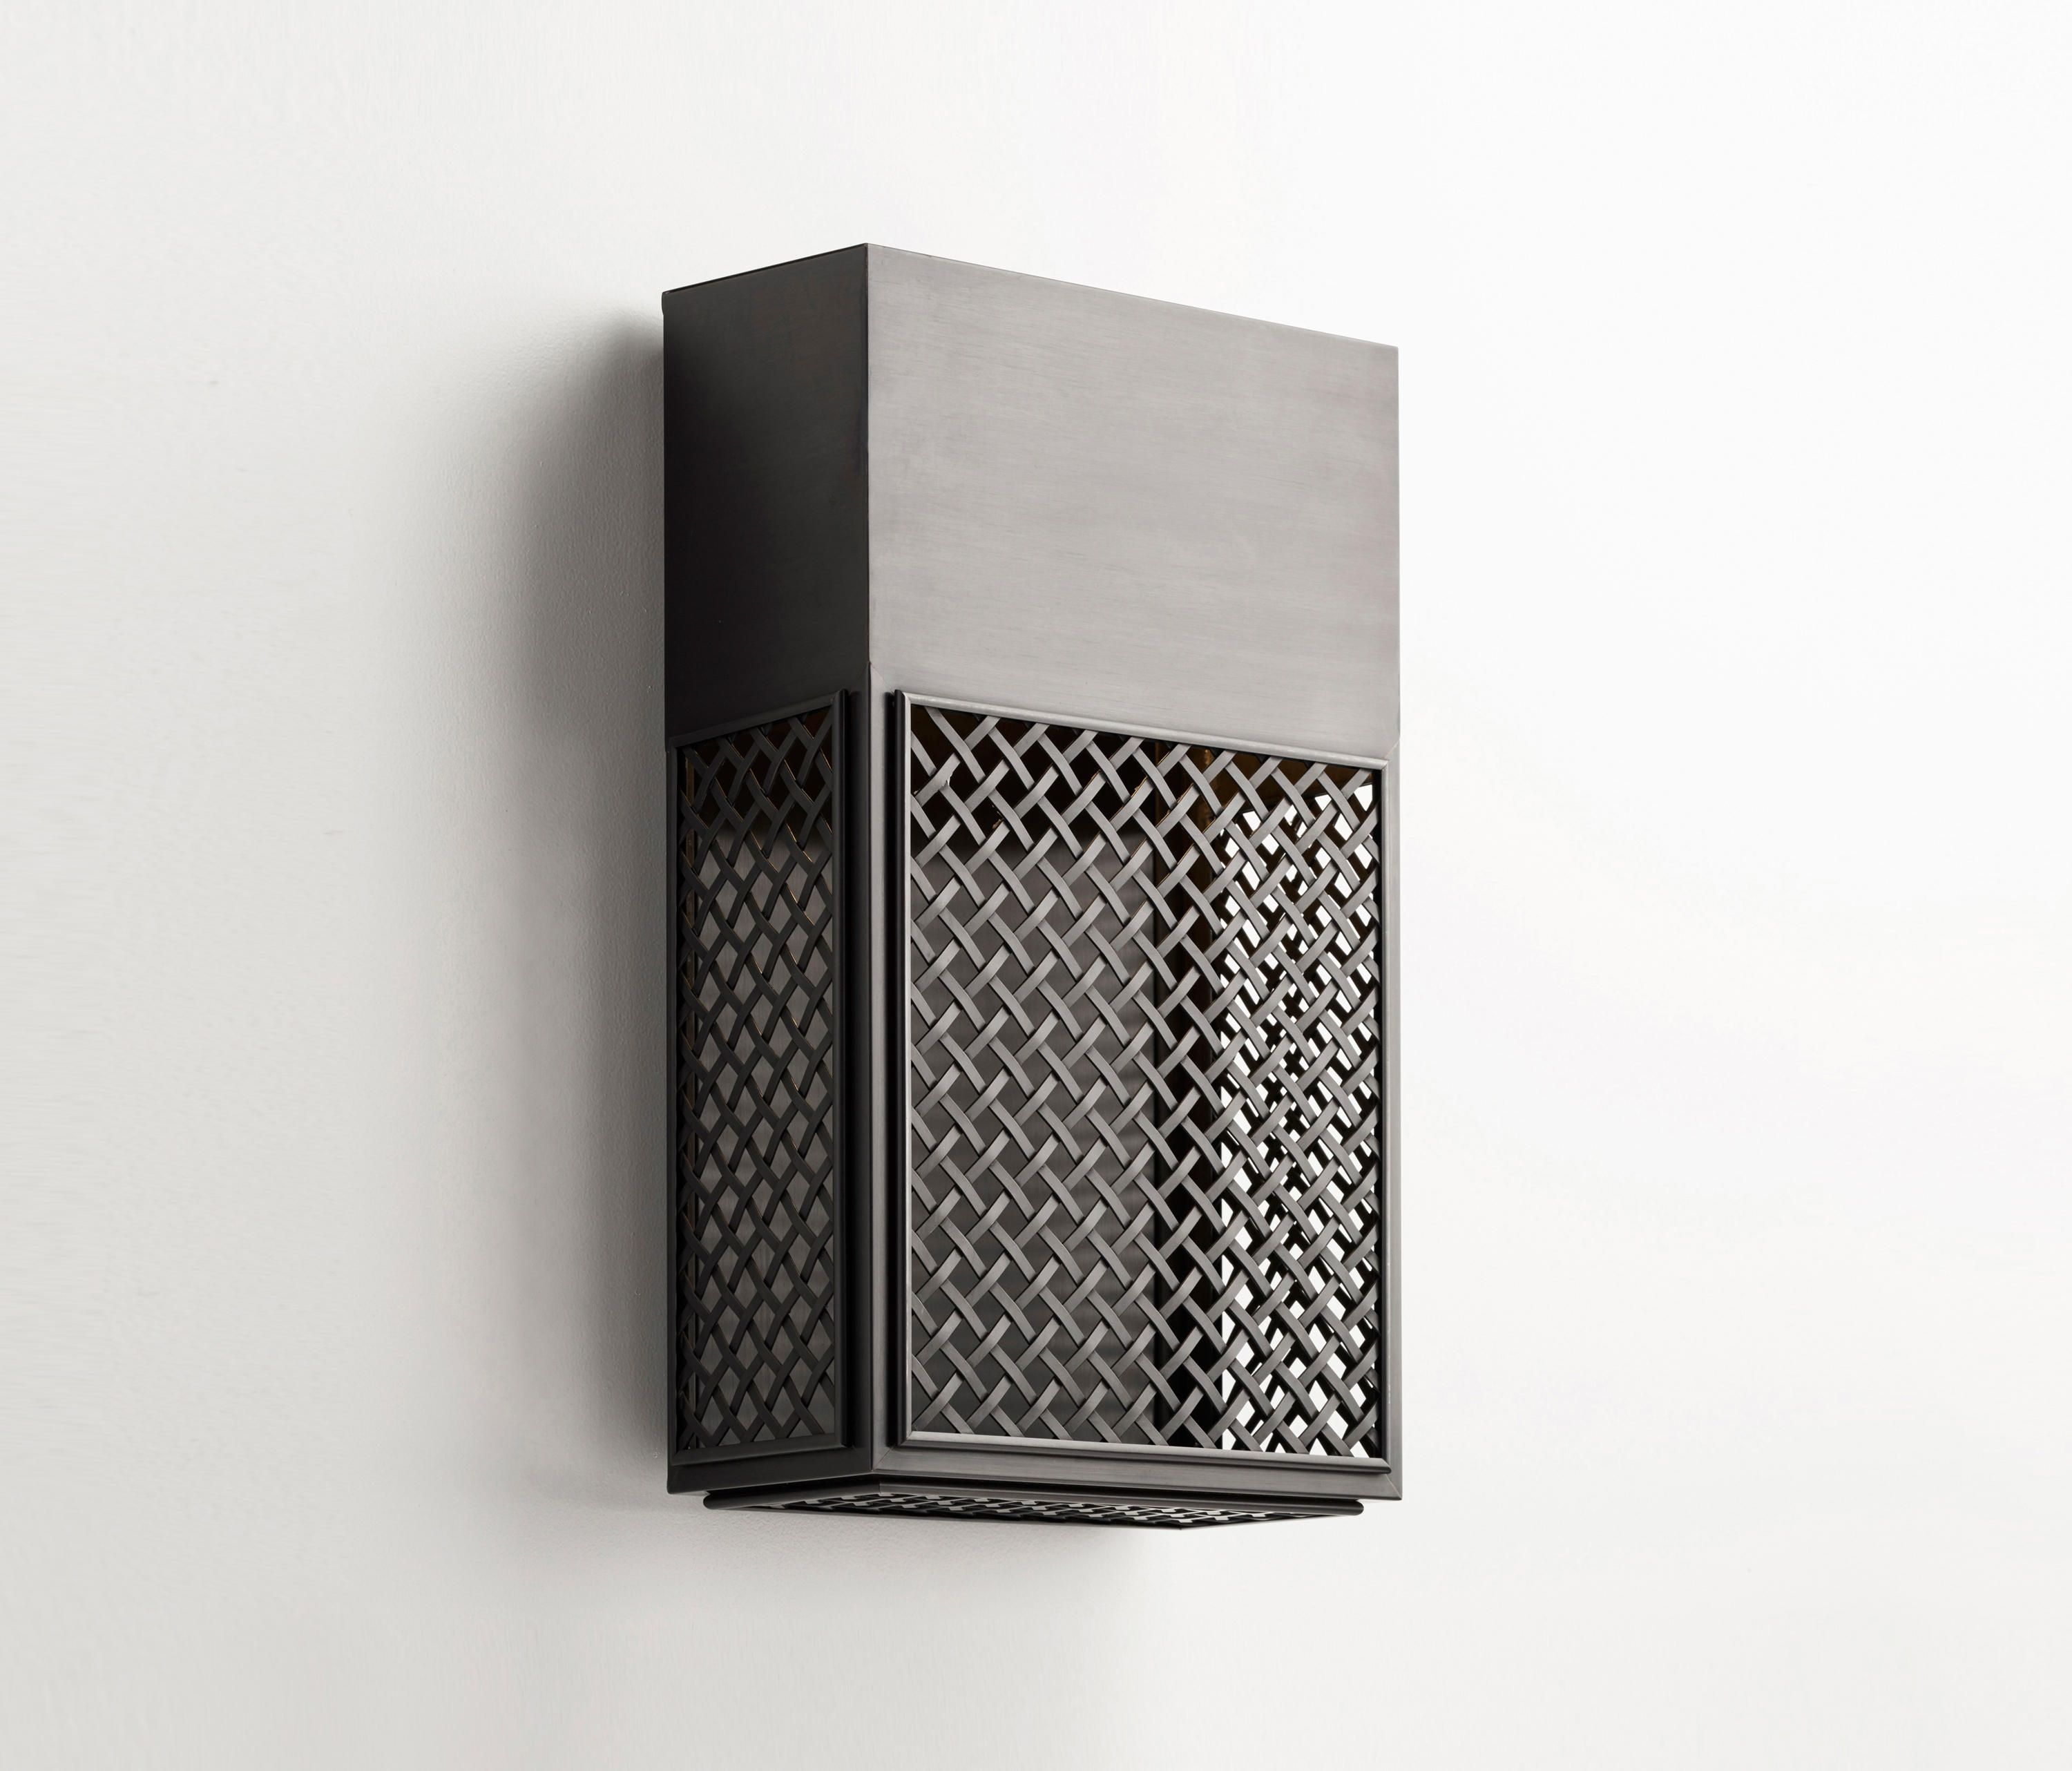 Indirect Wall Lighting wall light with mesh in dark bronze and indirect lighting. the